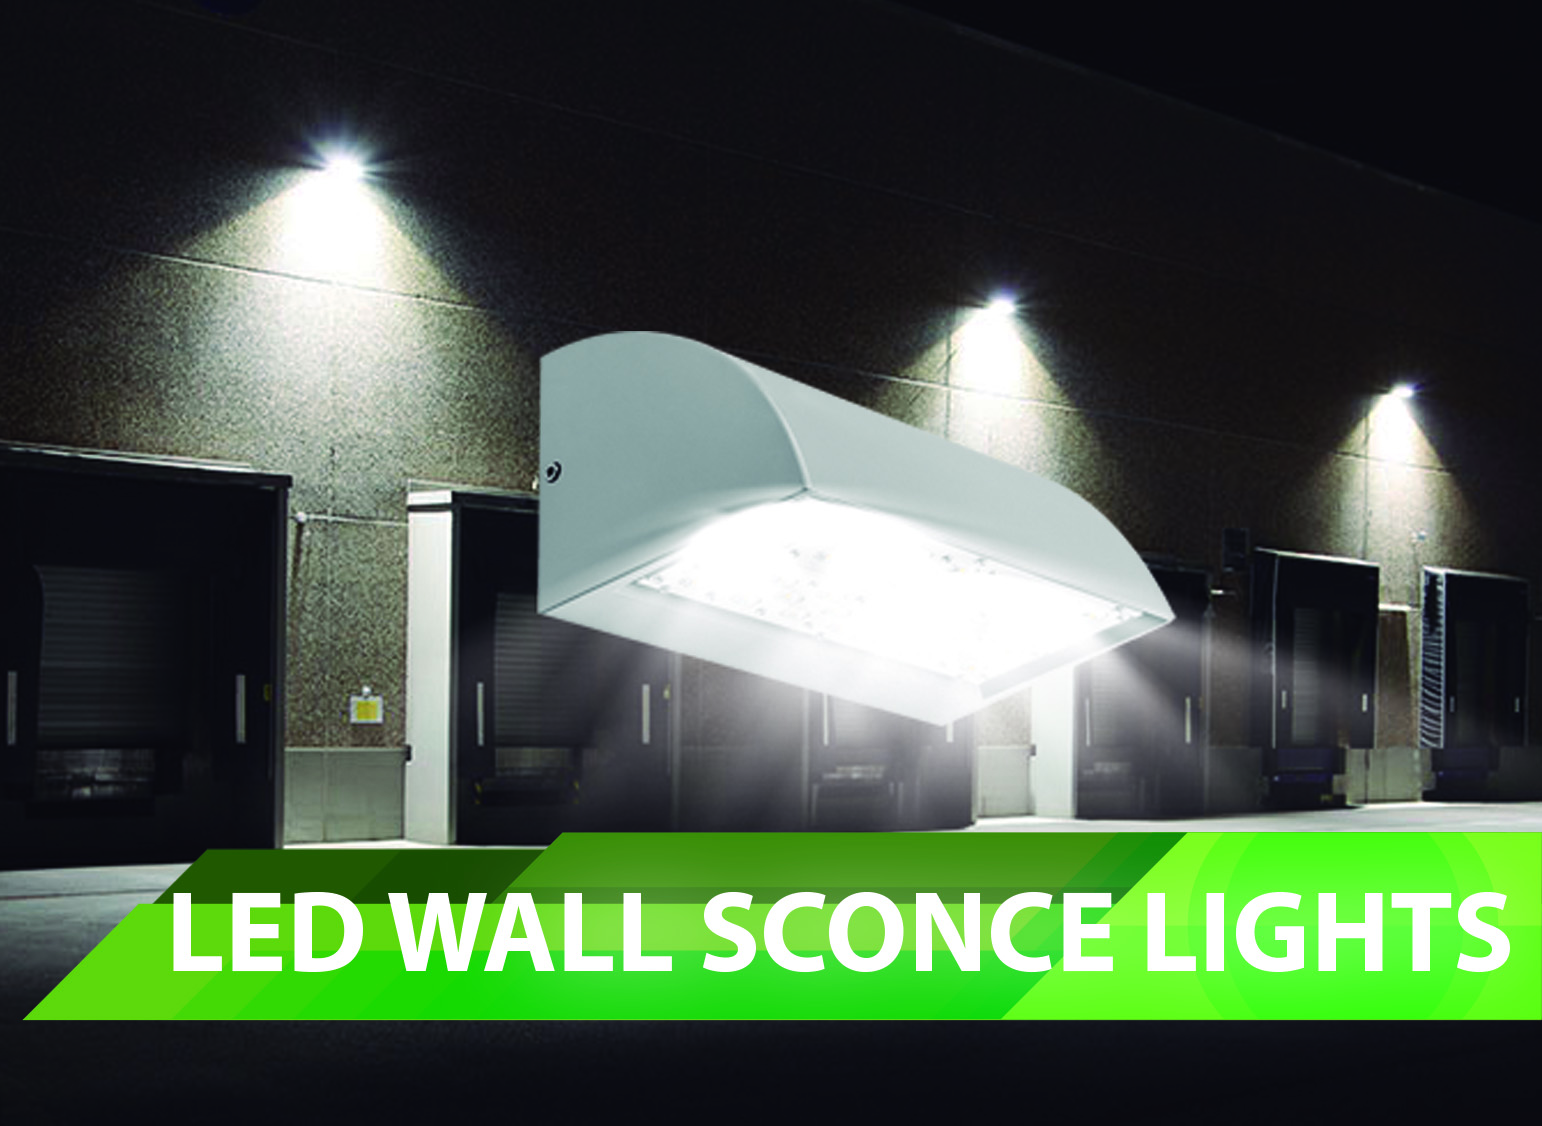 LED Wall Sconce Lights